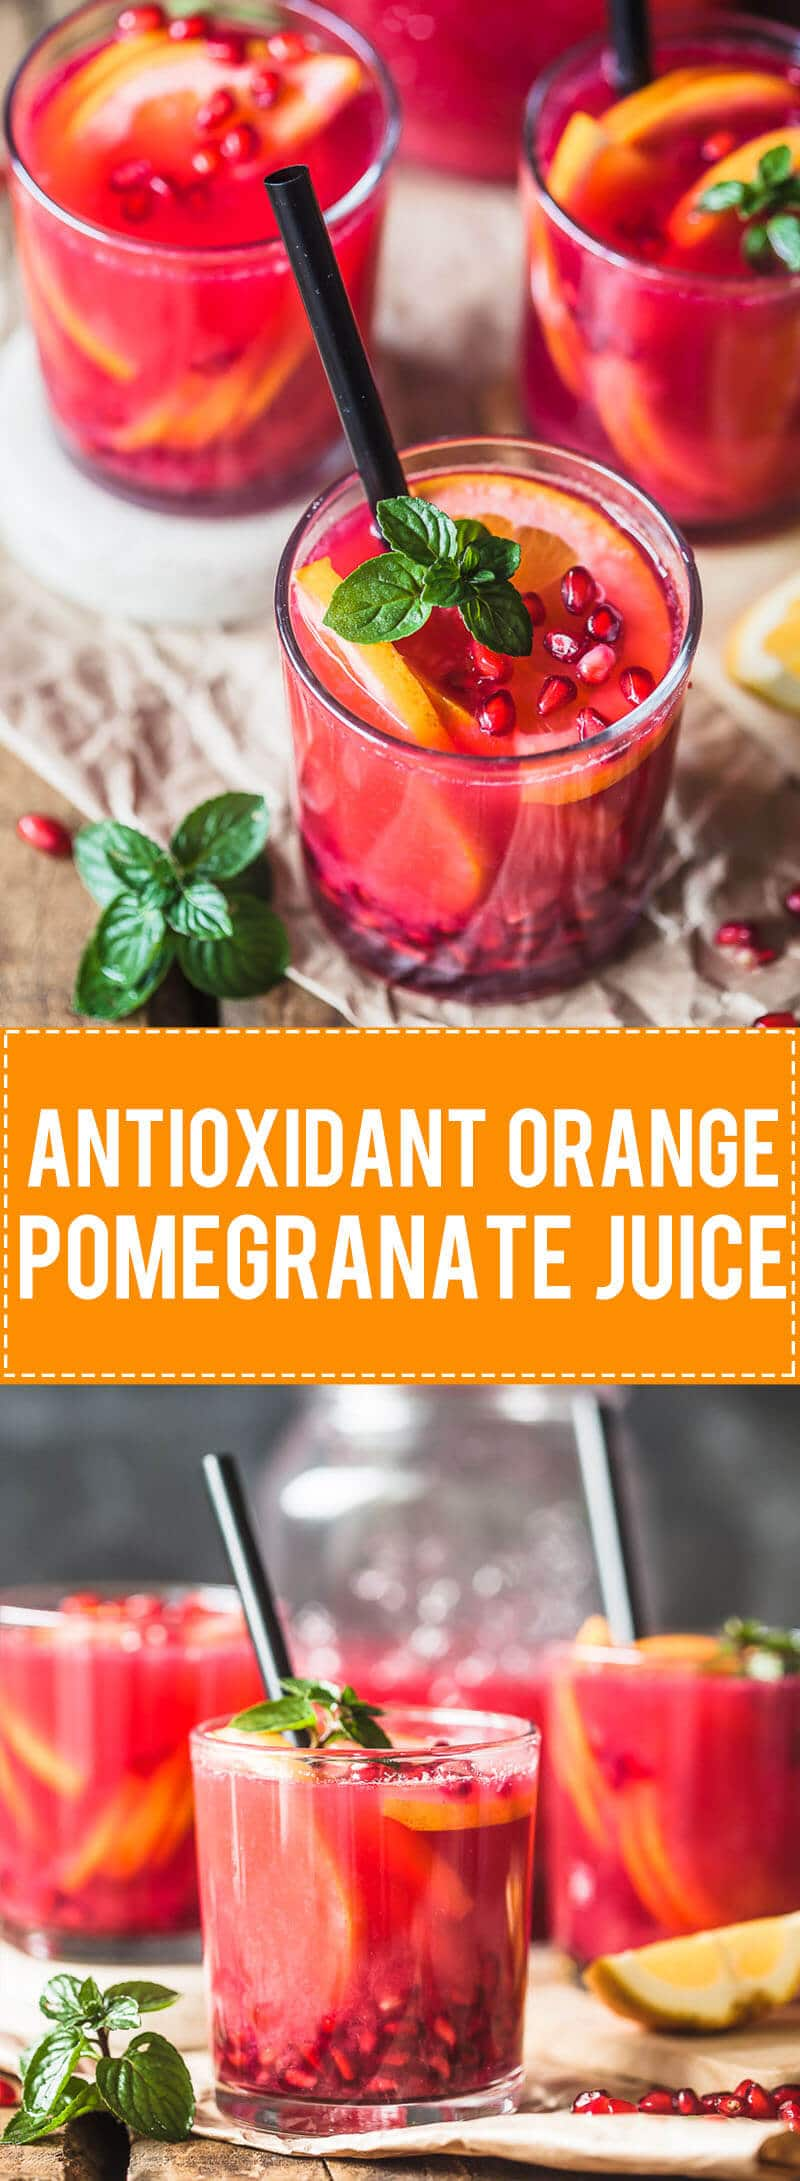 Homemade Antioxidant Orange Pomegranate Juice helps you get an instant vitamin boost!